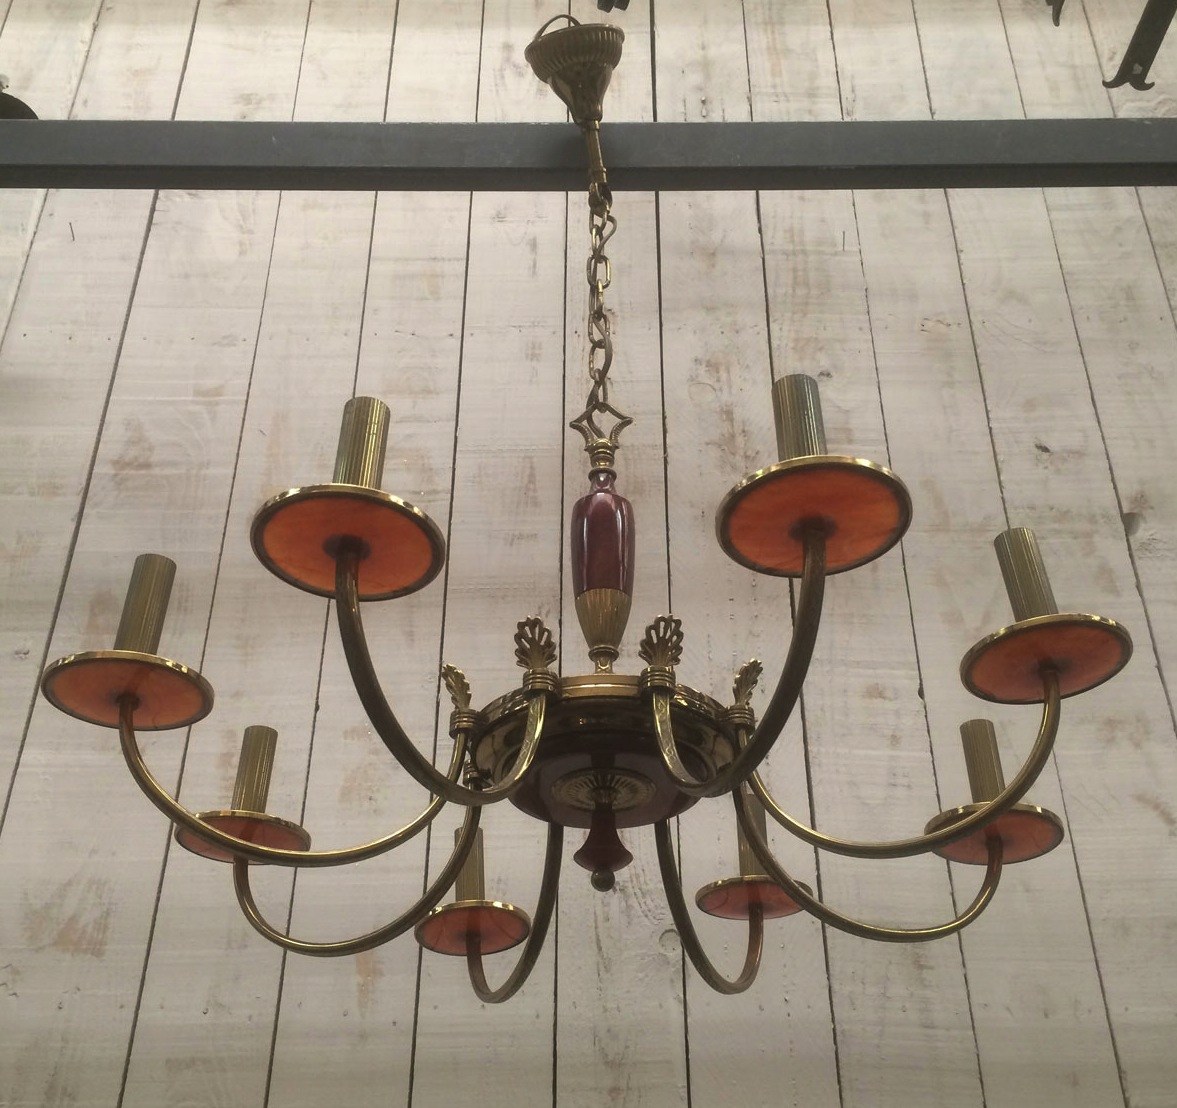 Neoclassical Chandelier In Brass And Red Plexiglas. About 1970